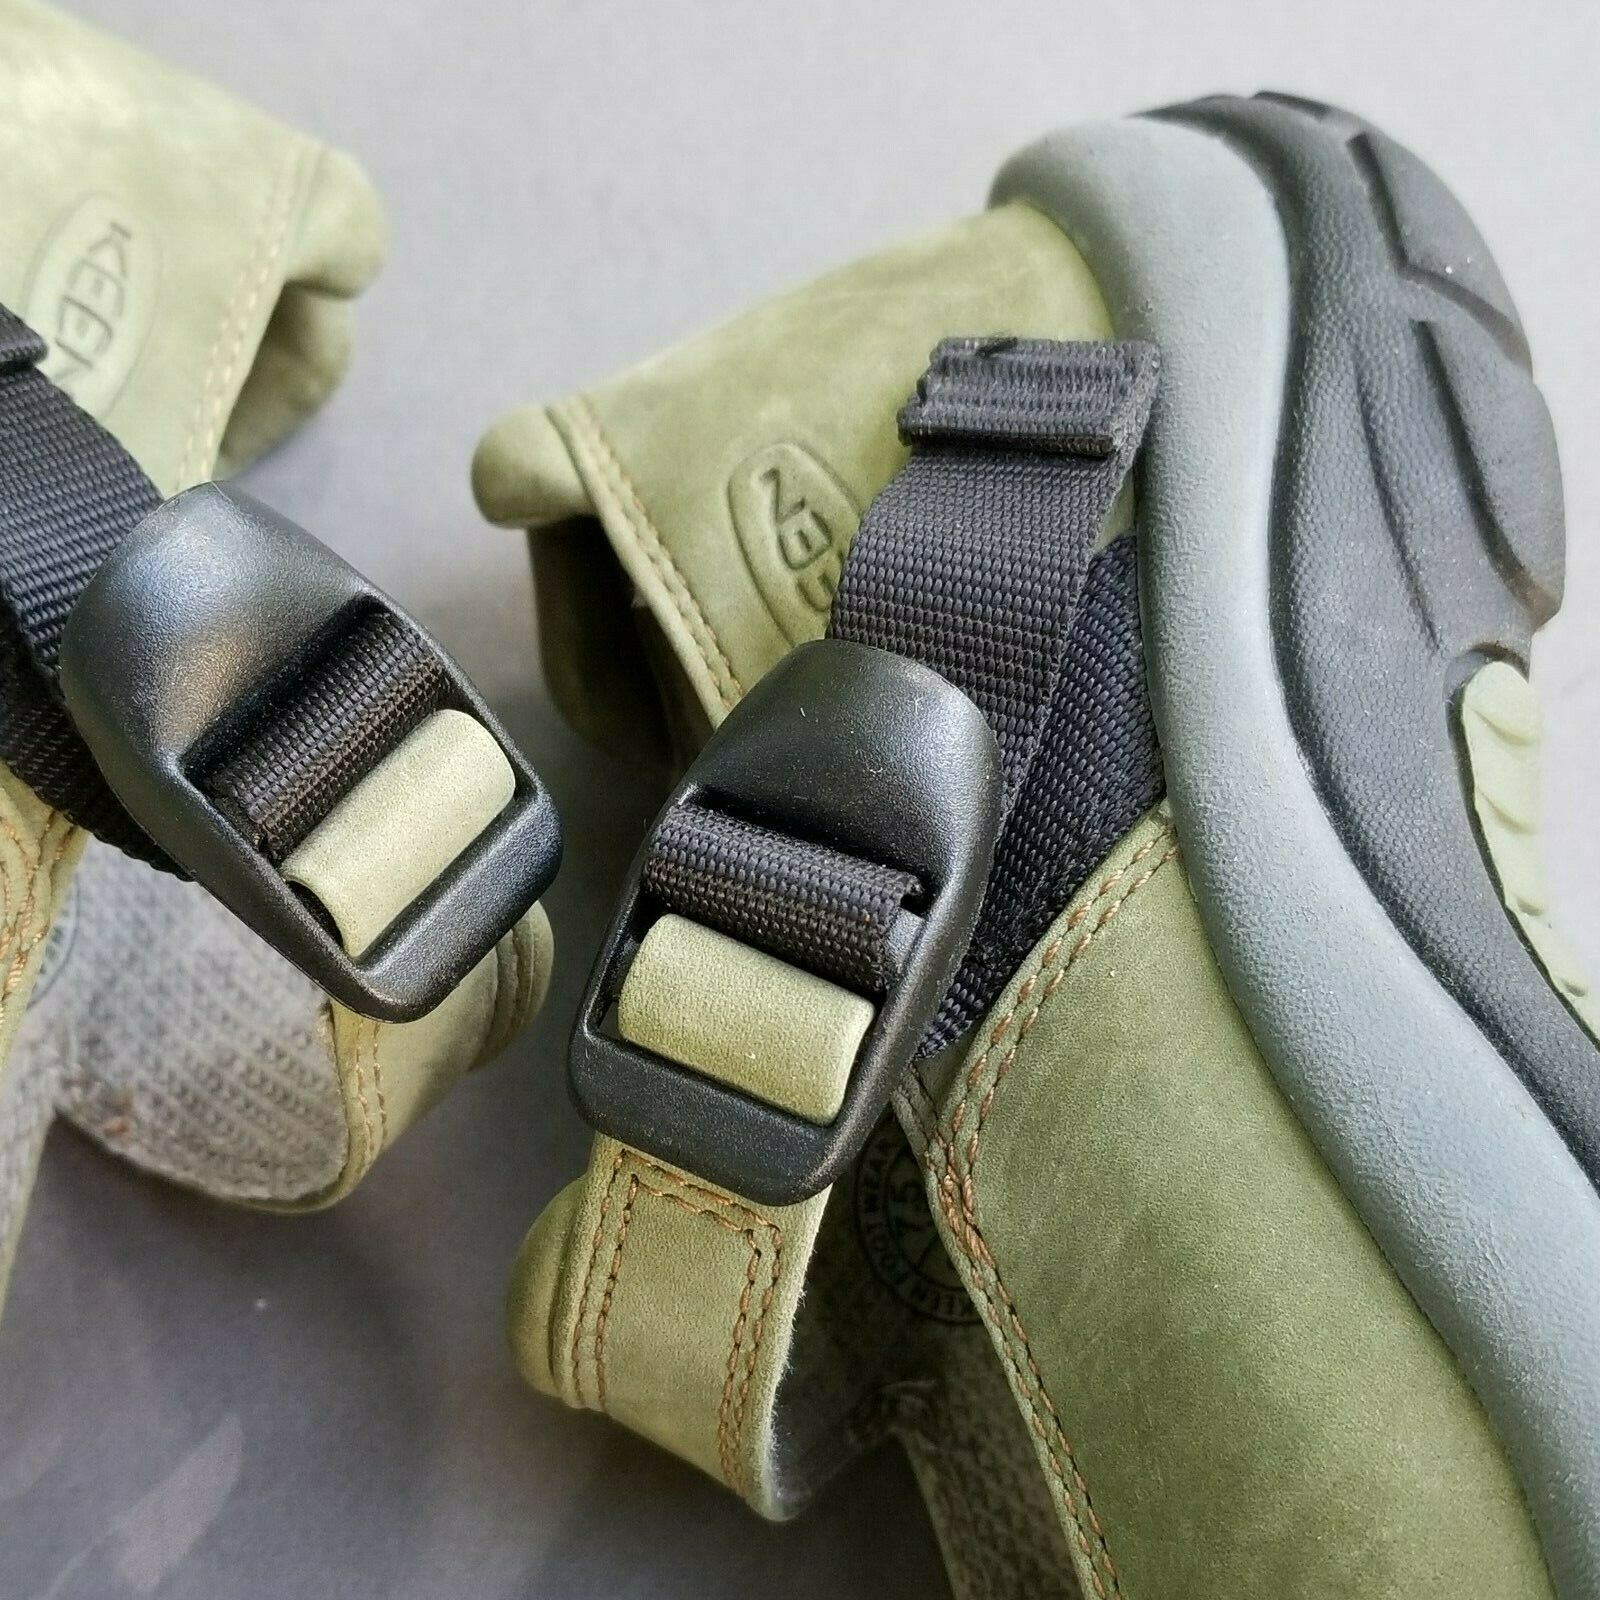 Keen Womens Mary Jane 7.5 Buckle Strap Green Suede Slip On Trail Shoes 38 image 8